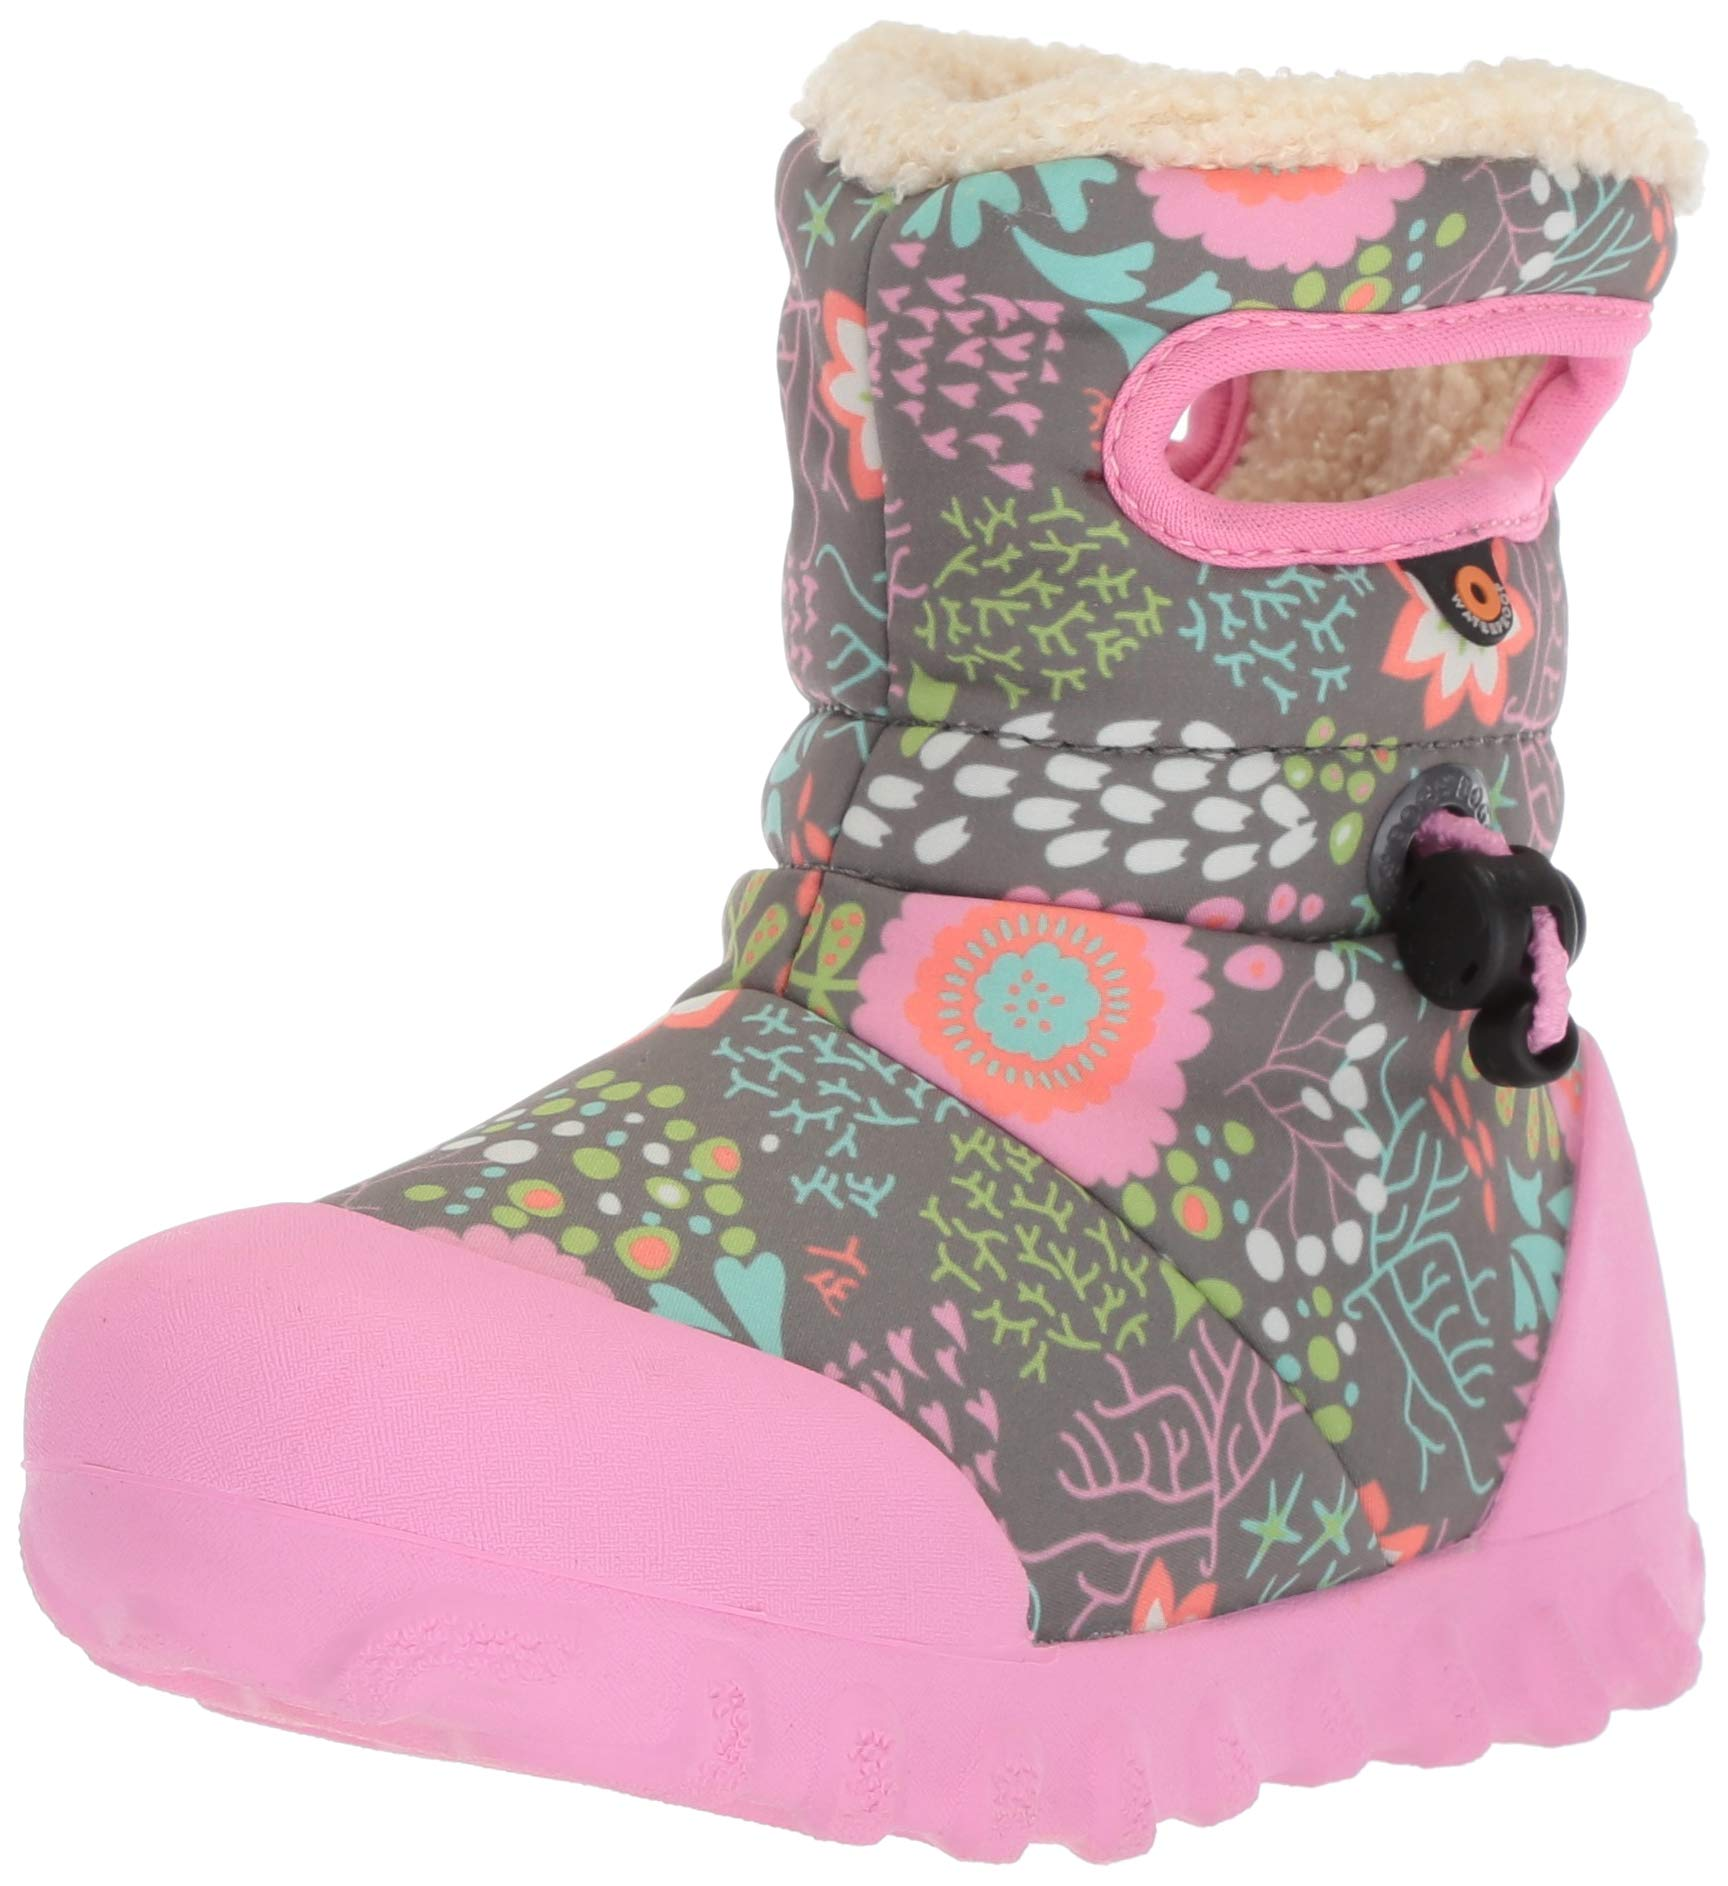 cdf4c3da52 Bogs Baby B-Moc Waterproof Insulated Kids/Toddler Winter Boot, Reef  Print/Gray/Multi, 13 M US Little